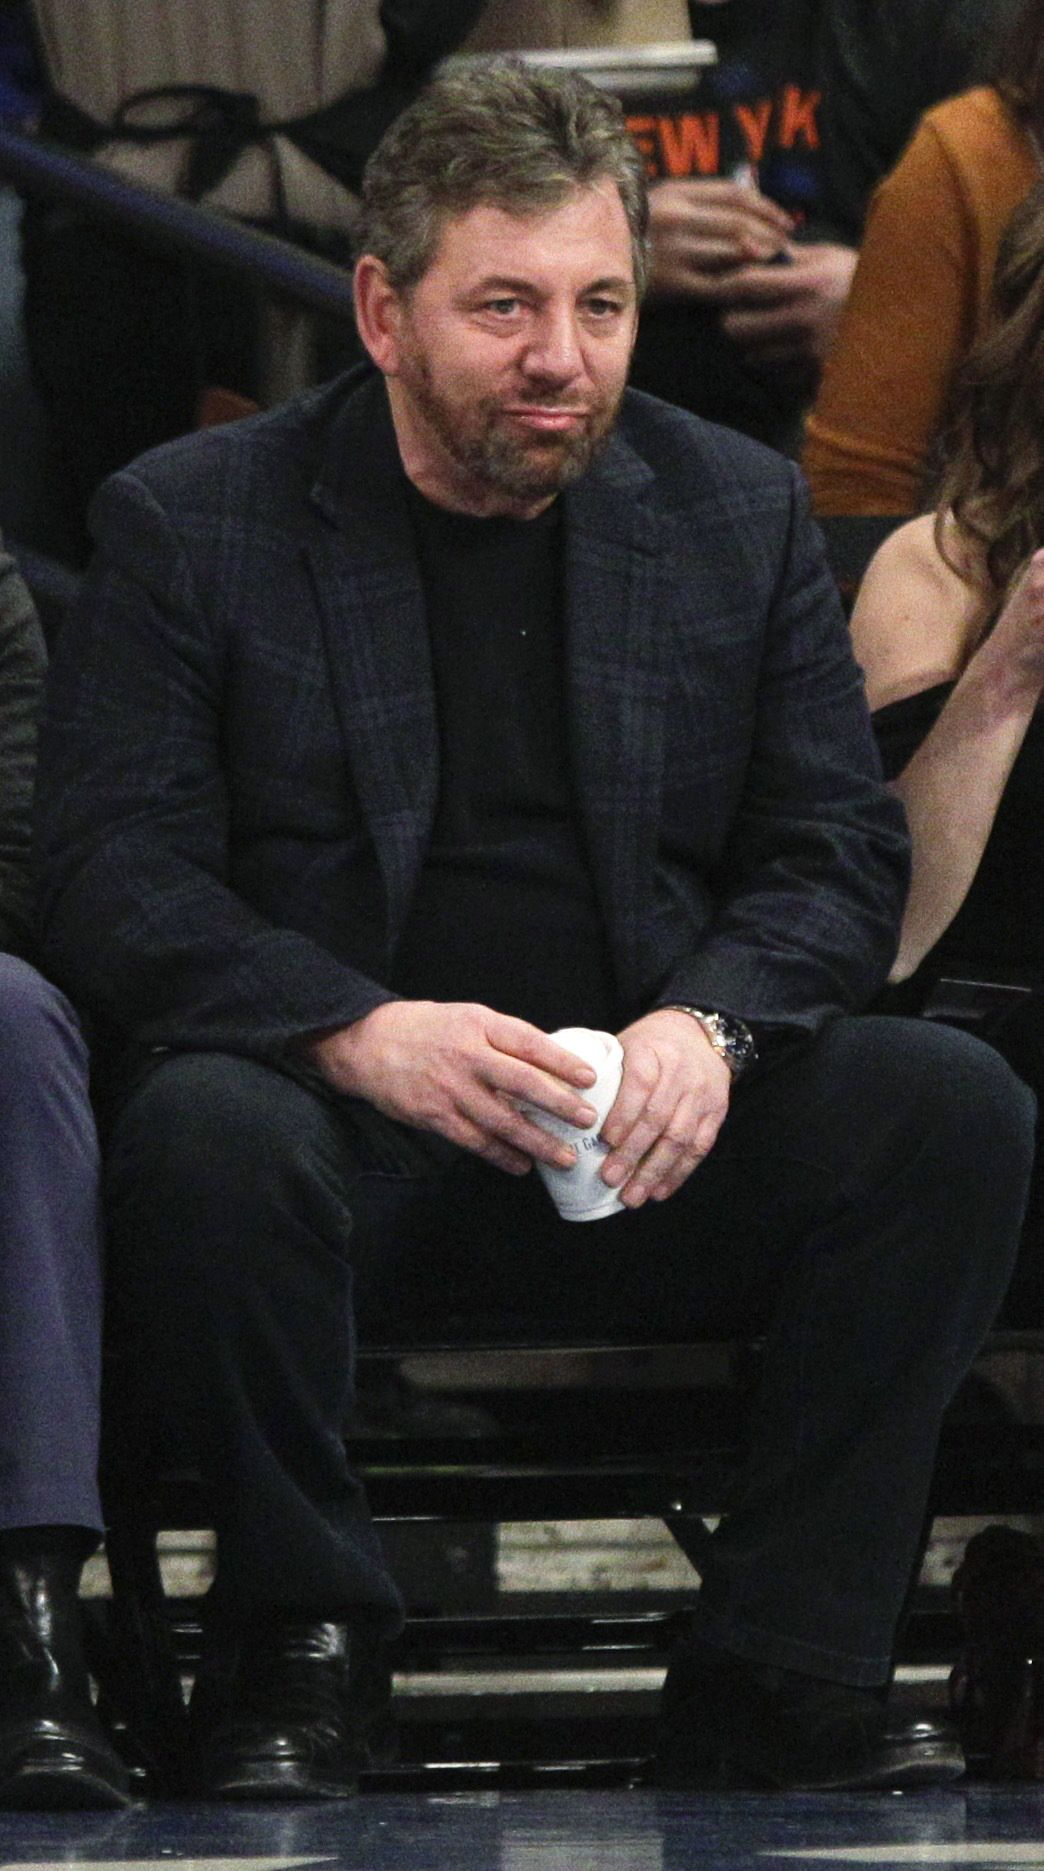 Knicks' chairman James Dolan rips fan in email, tells him to root for Nets